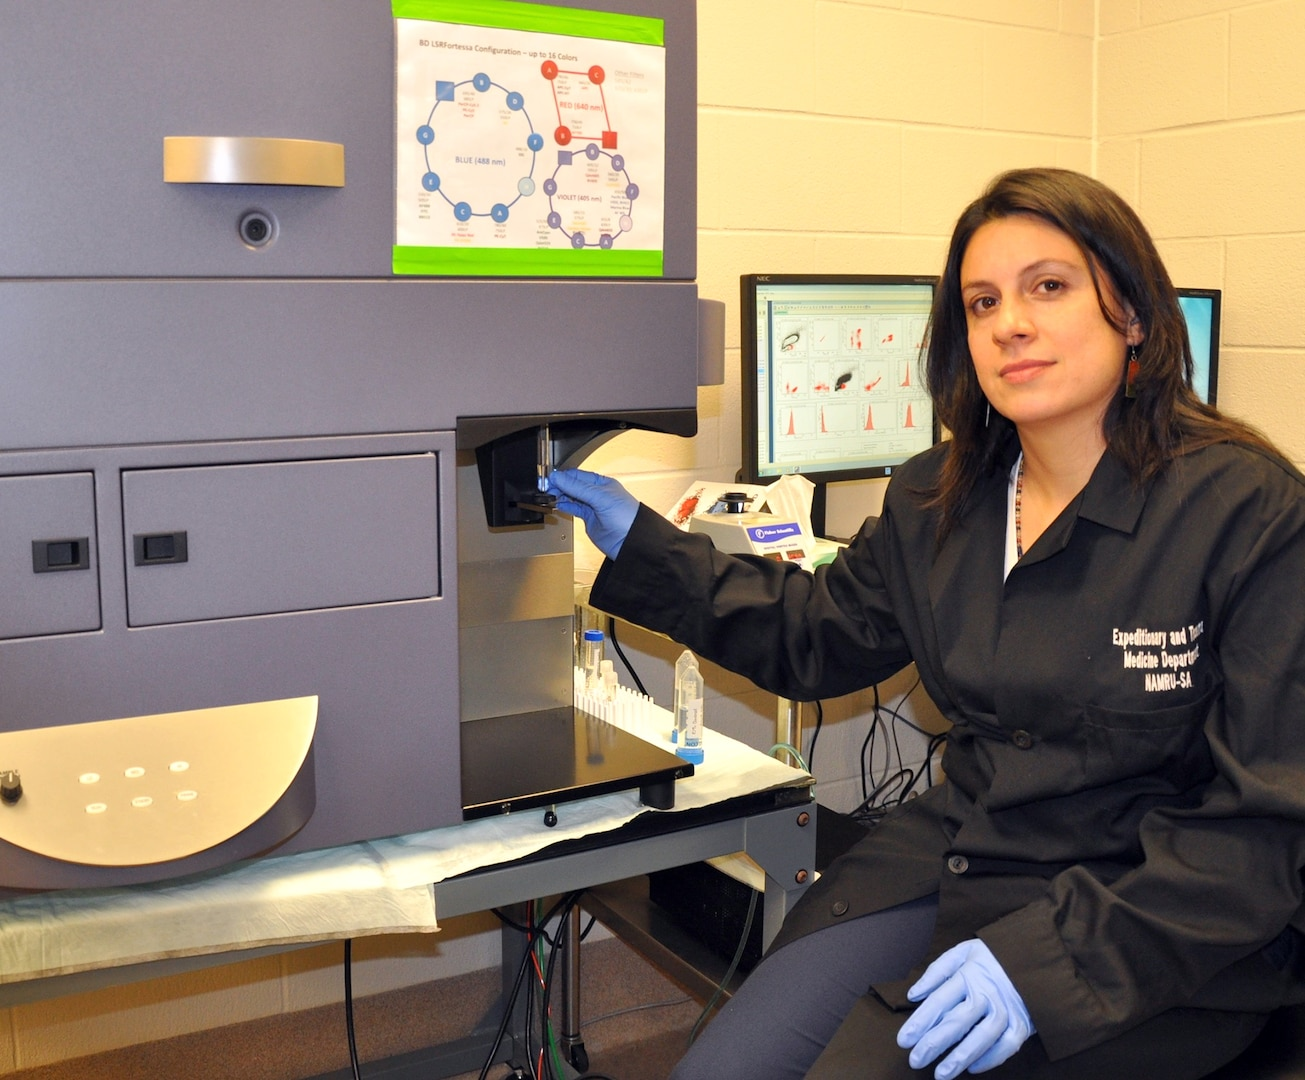 Dr. R. Madelaine Paredes, a researcher in Naval Medical Research Unit San Antonio's Immunodiagnostic and Bioassay Development Department, demonstrates the use of the flow cytometer technique to perform single cell measurements. Flow cytometer can identify the numbers of cells that have a particular feature (size, or a specific marker in their surface or intracellular). Navy researchers can then discern what molecules are being produced by each cell type and compile an extensive inflammatory profile for that particular sample.